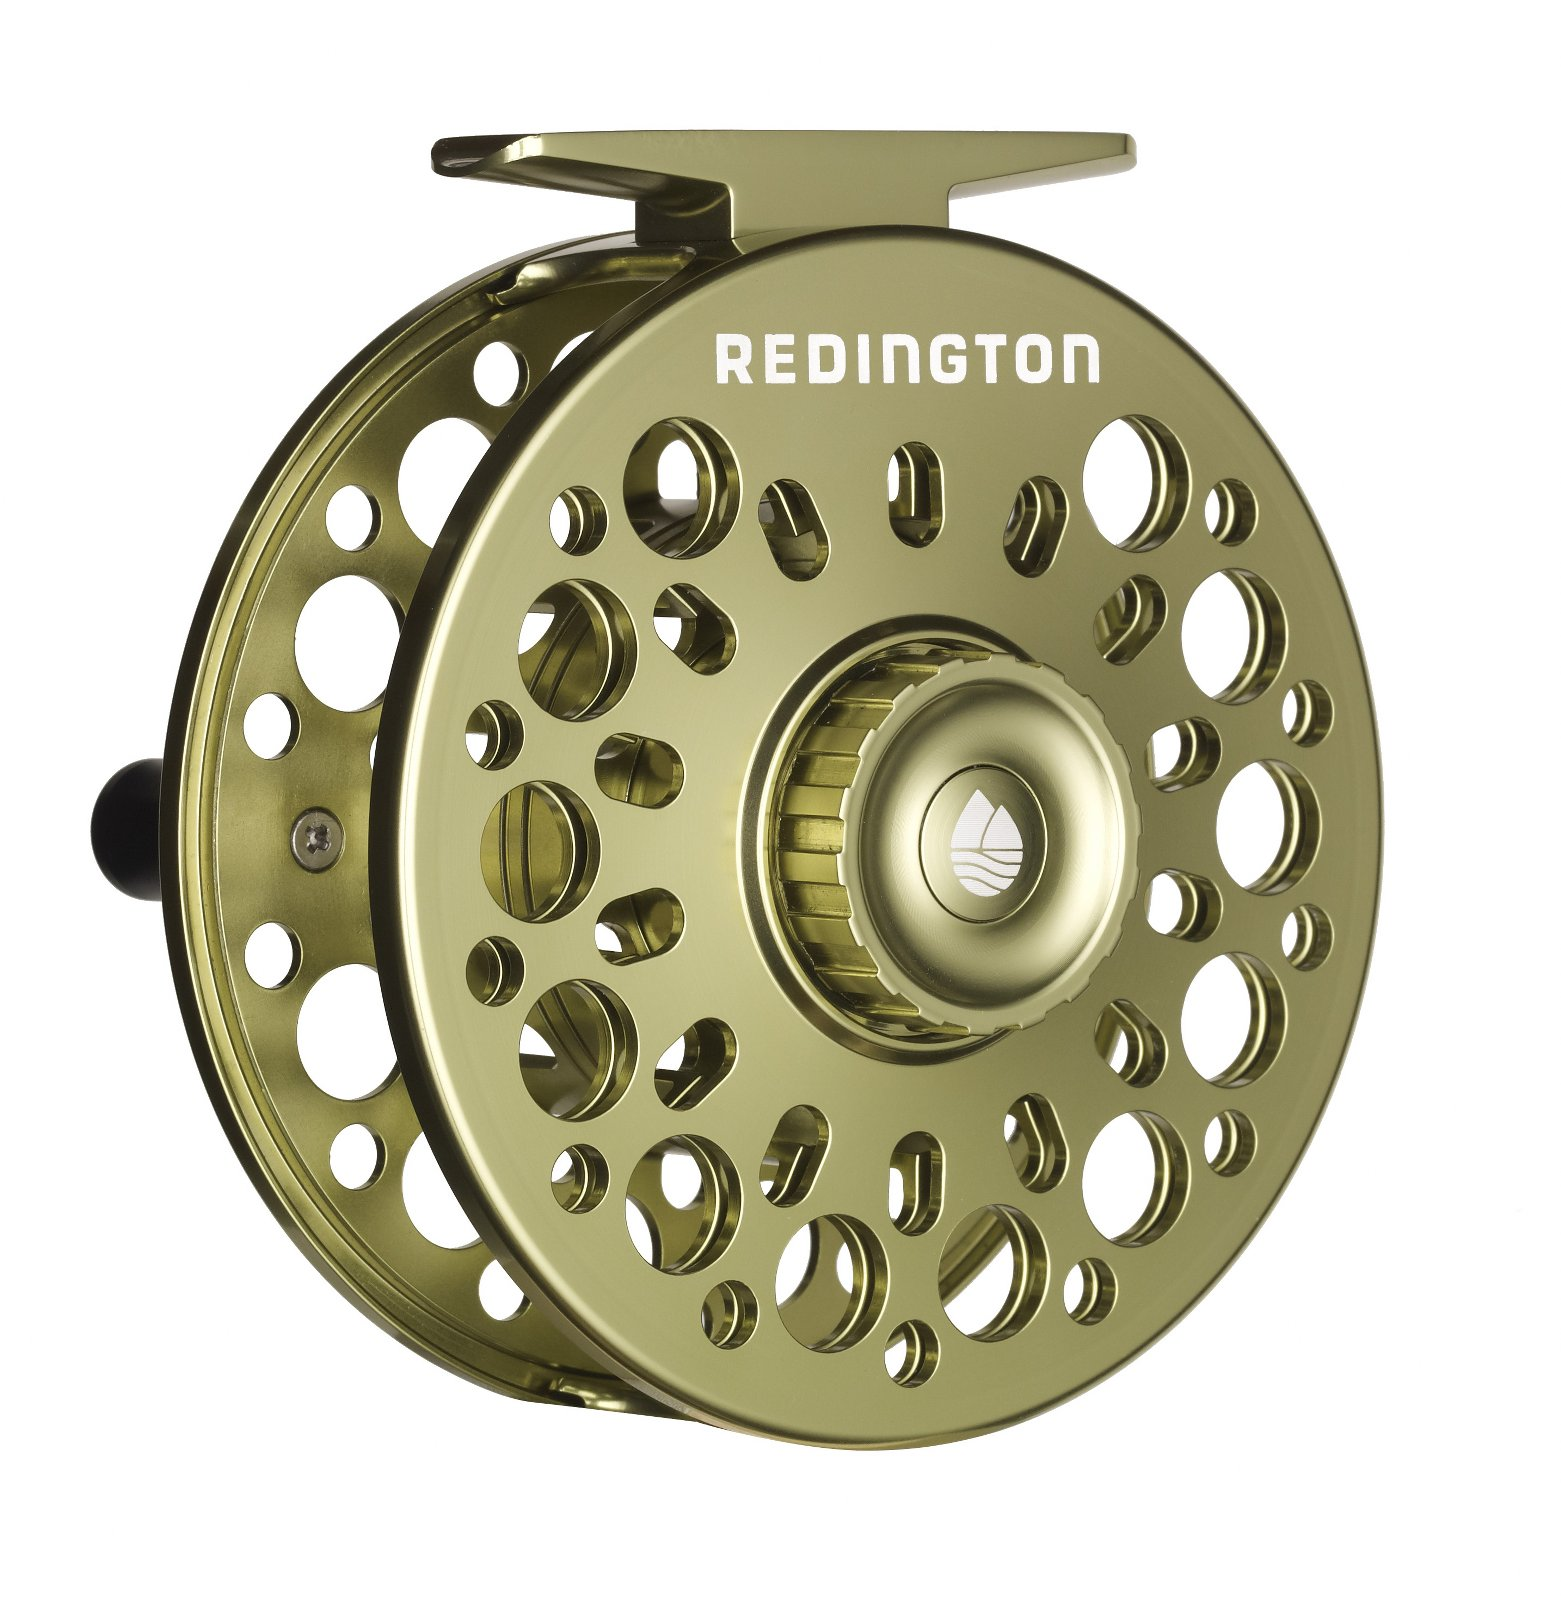 Redington rise ii fly fishing reel large arbor fully for Fly fishing reels ebay